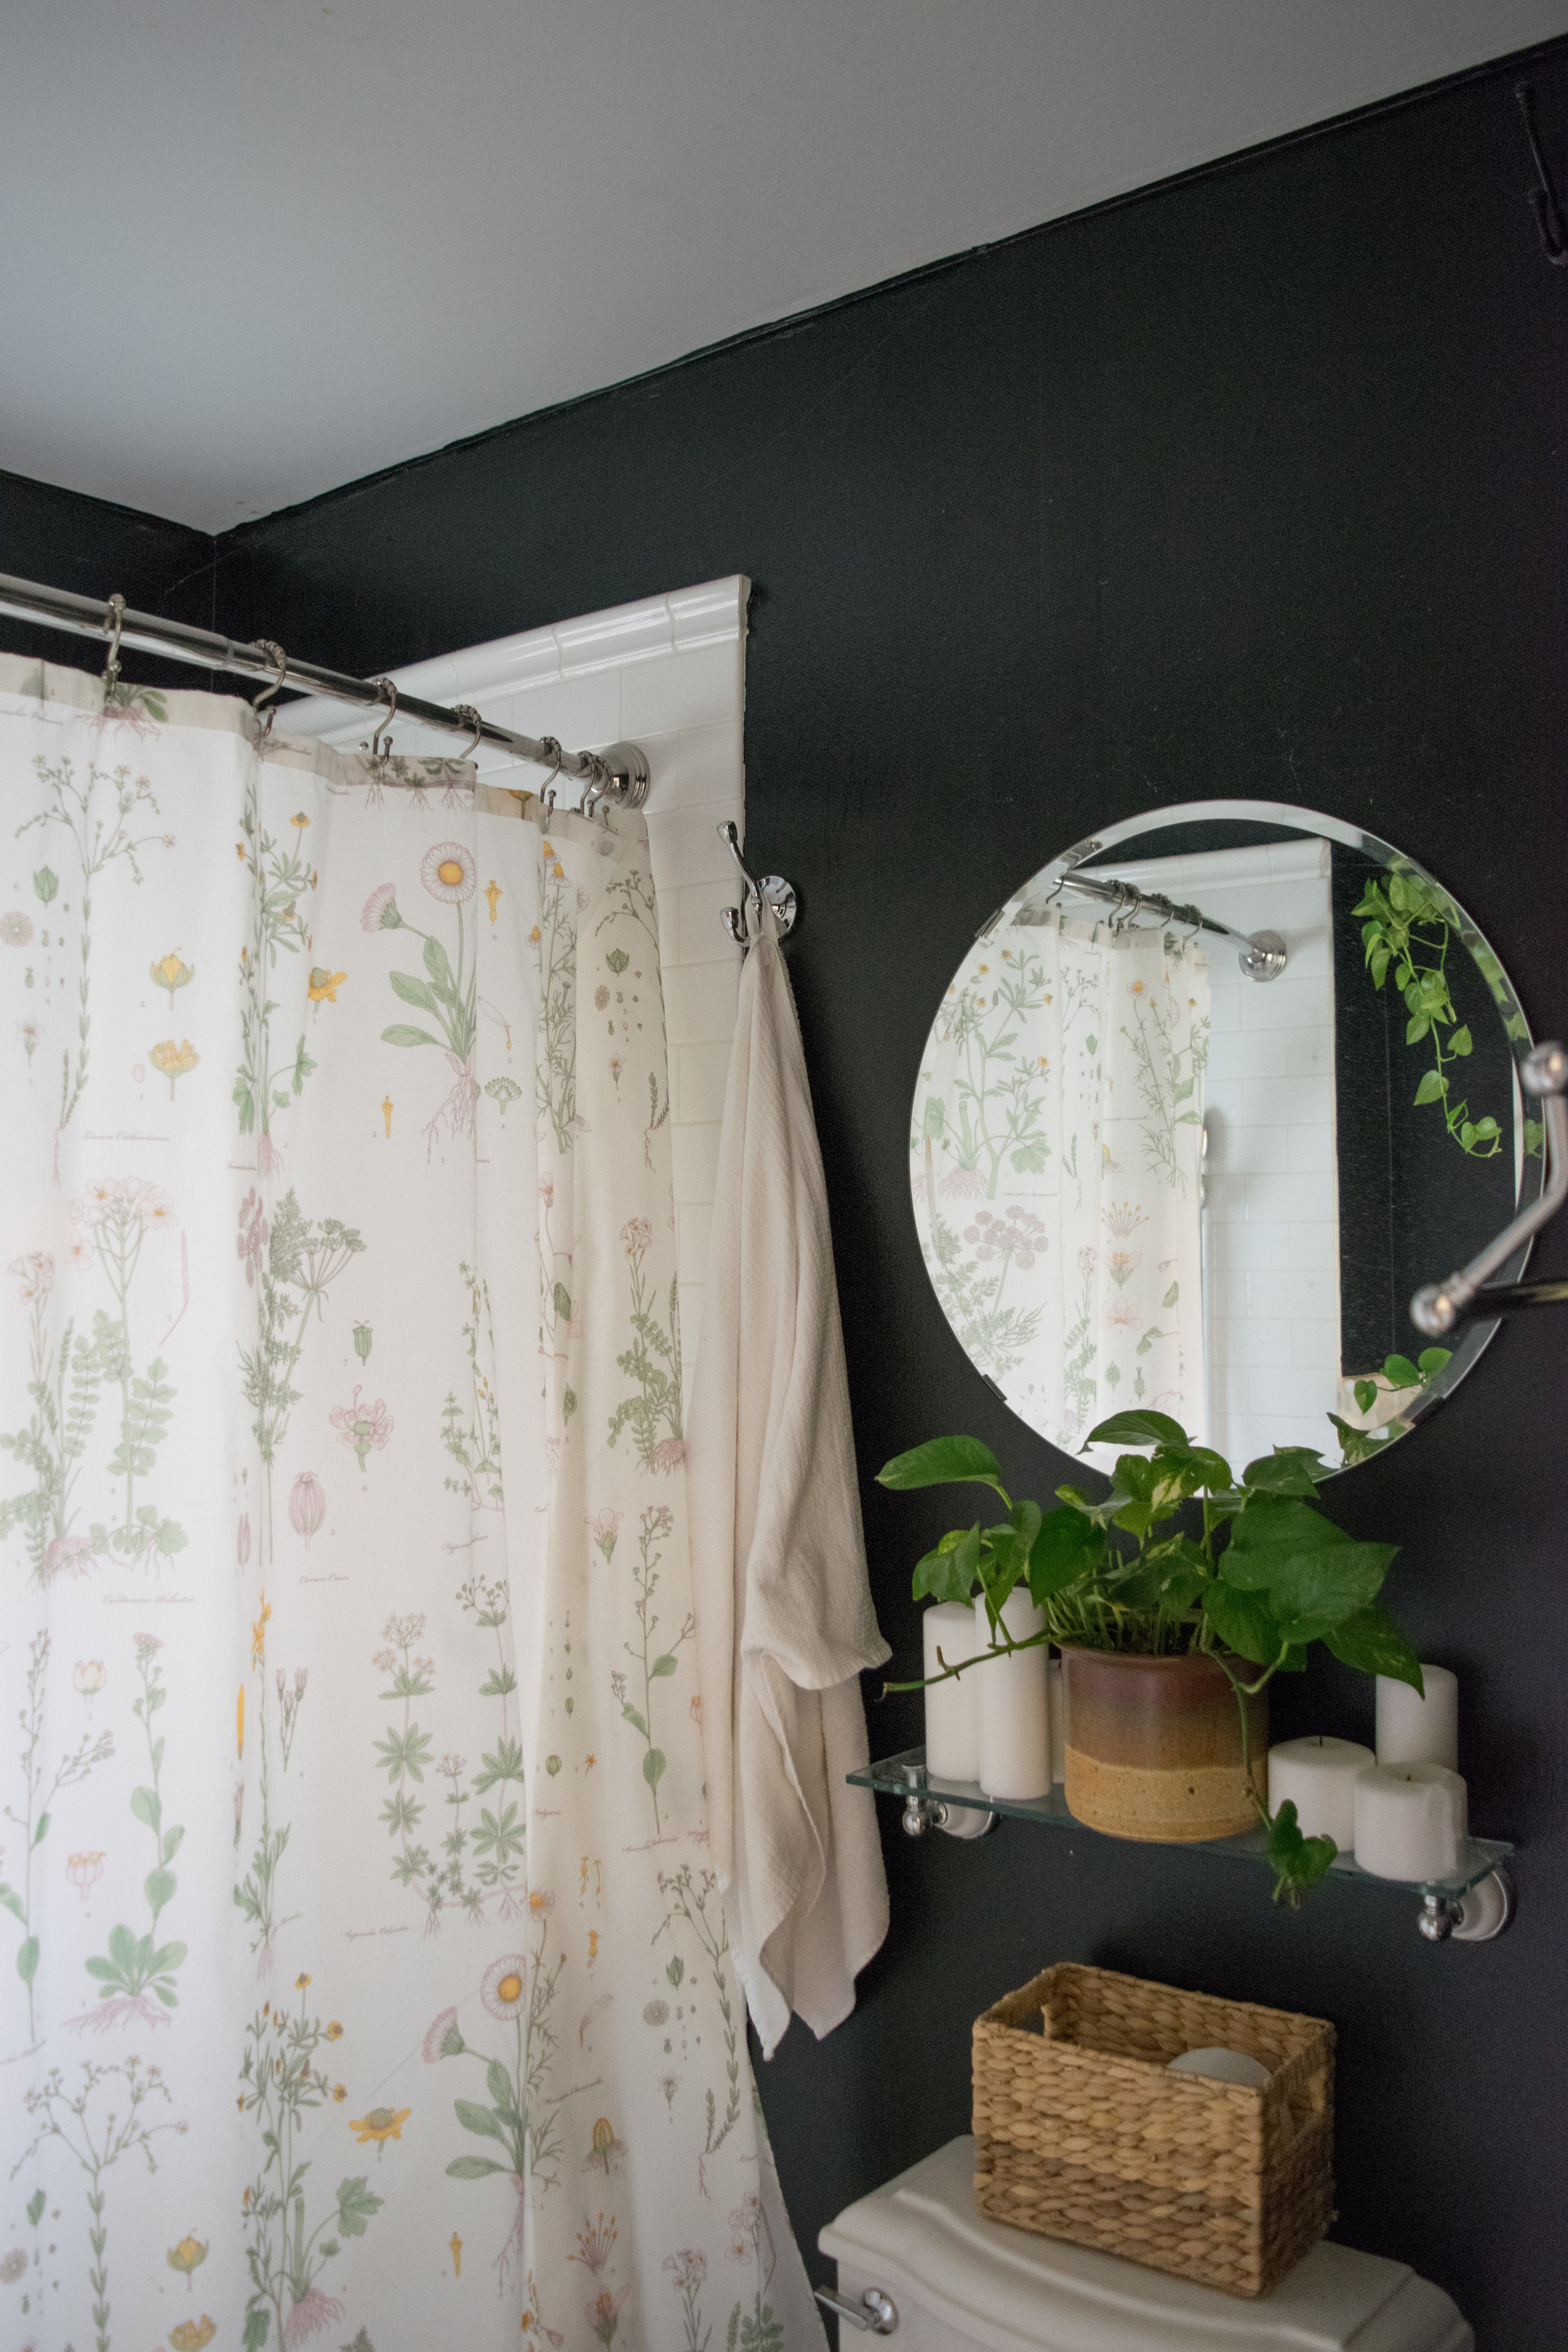 bathroom_mirror (1 of 1).jpg